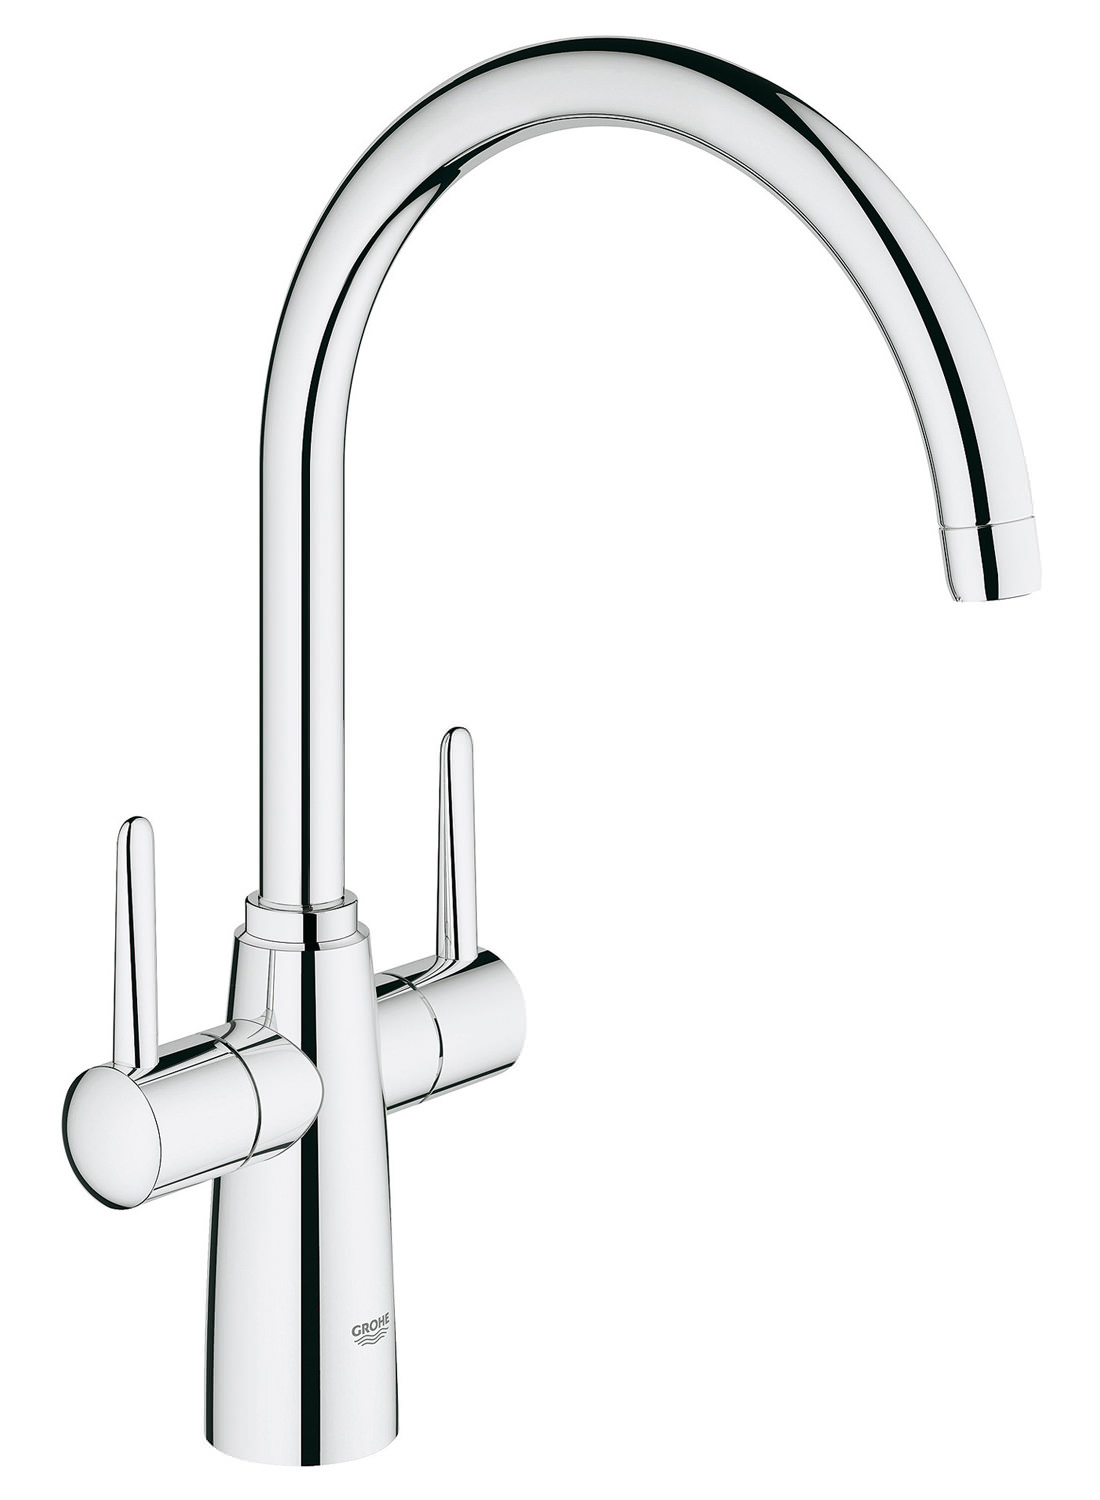 Grohe Ambi Contemporary 2 Handle Kitchen Sink Mixer Tap